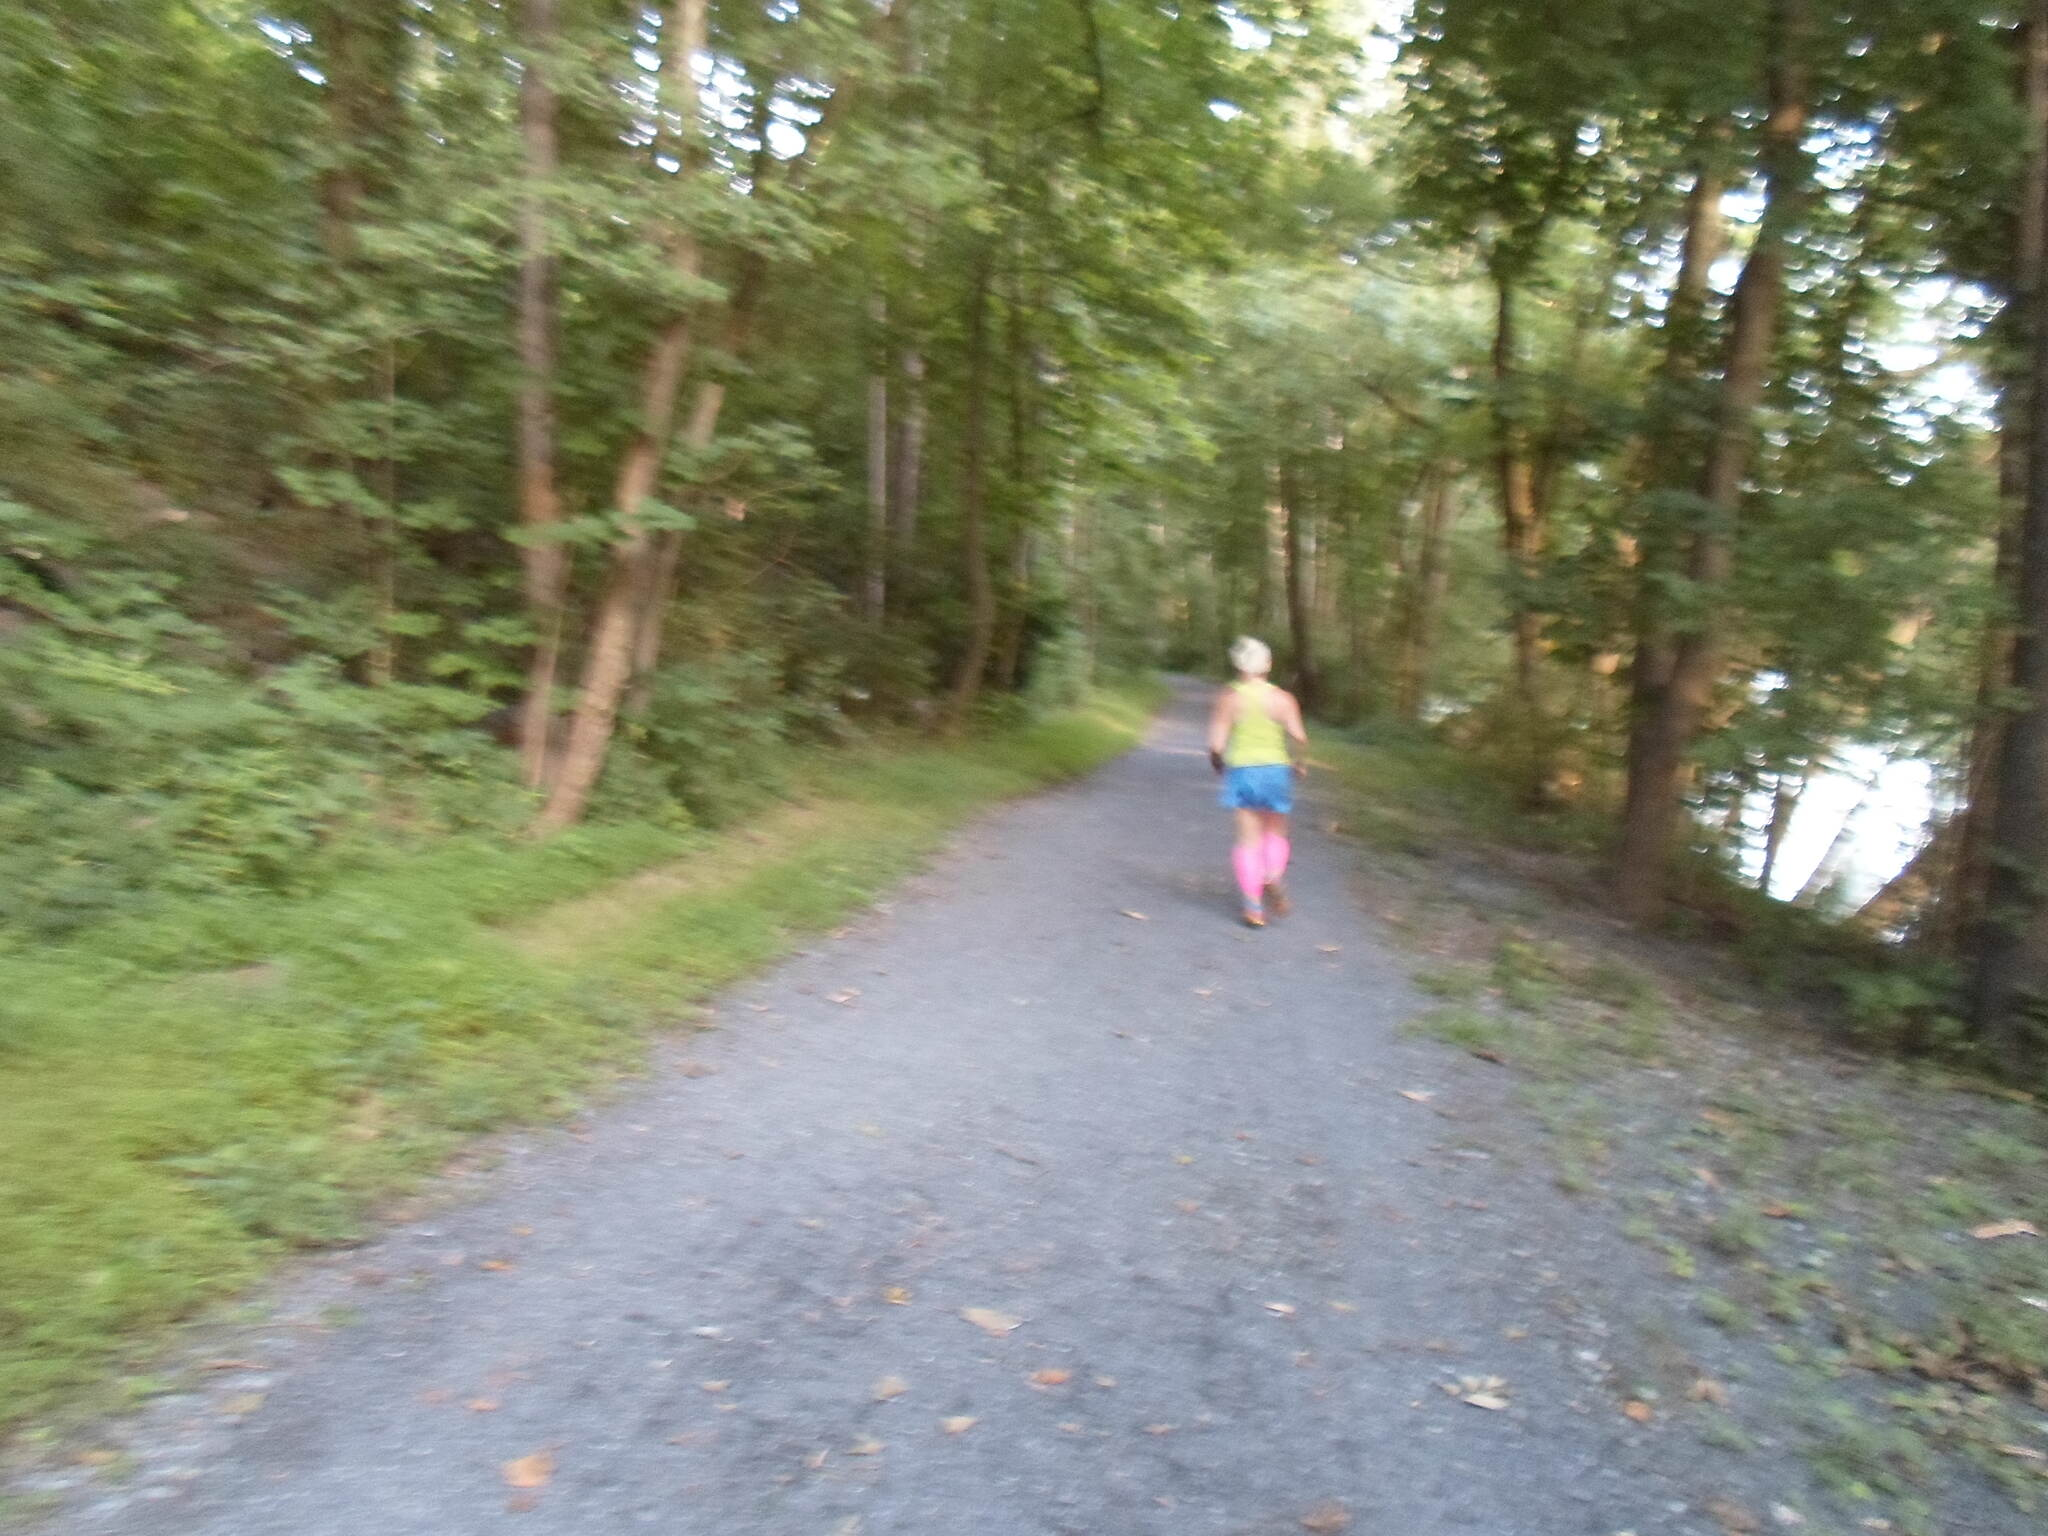 Exeter Scenic River Trail Exeter Scenic River Trail Summer evening jog. Taken July 2014.